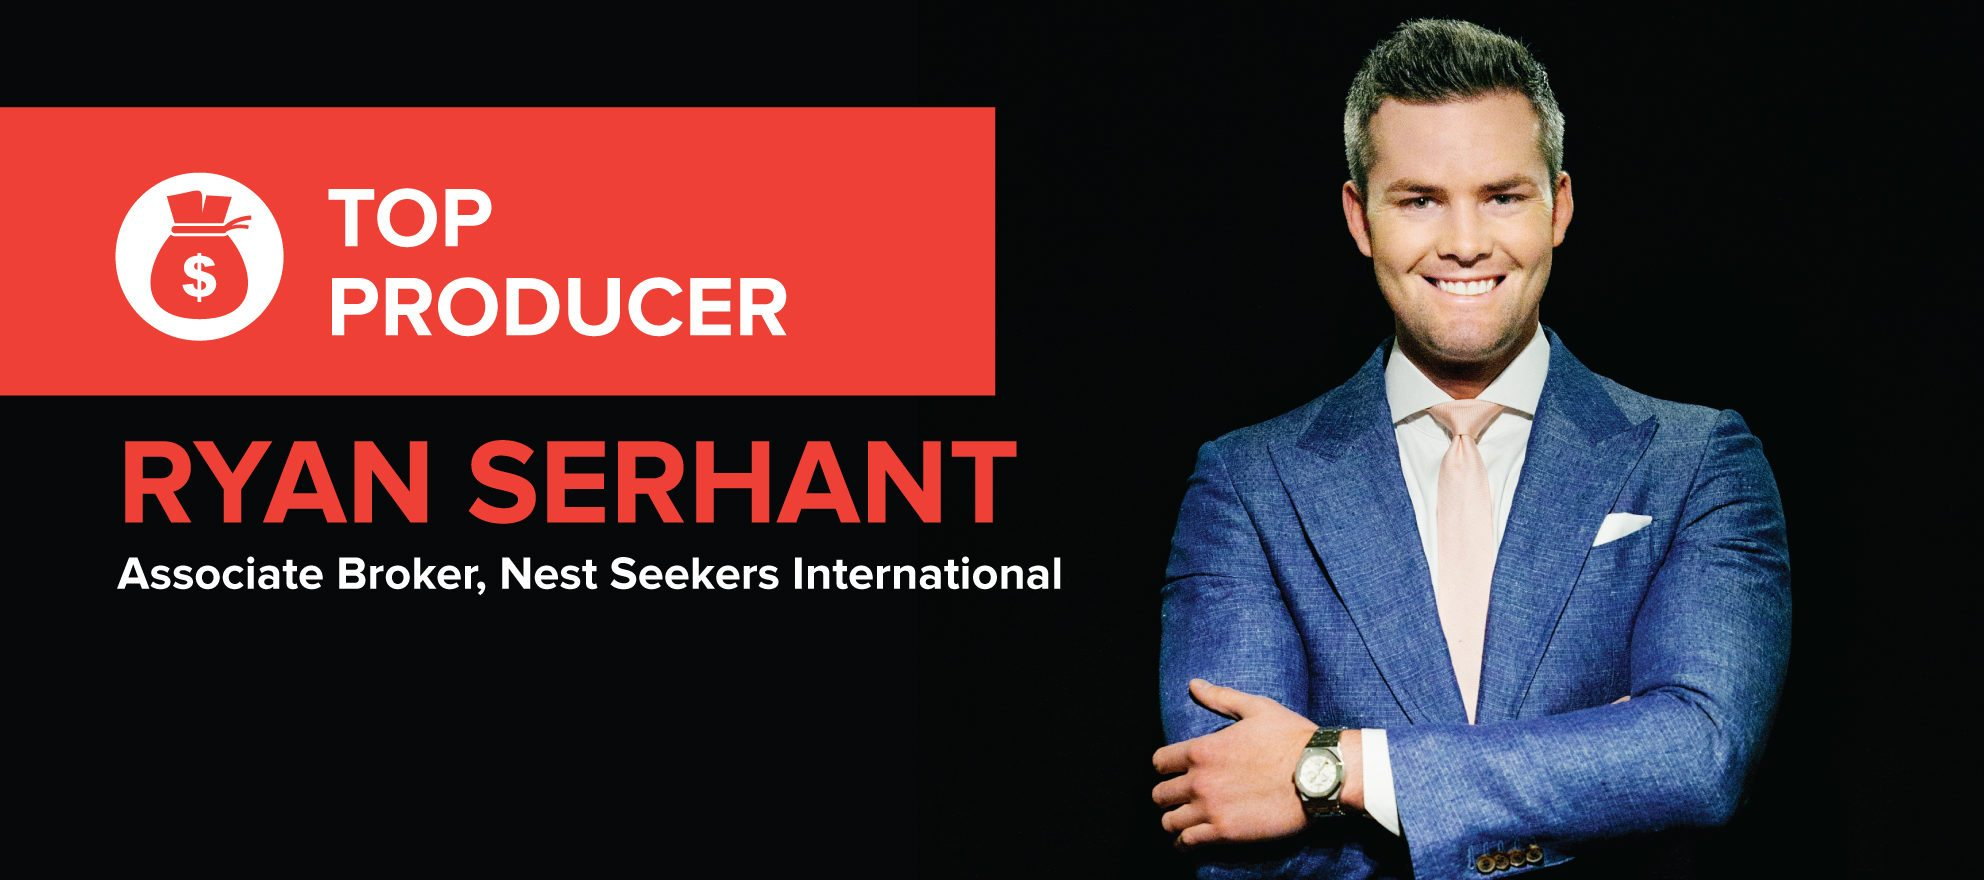 Ryan Serhant: 'Lack of focus and lack of endurance' are biggest barriers to success